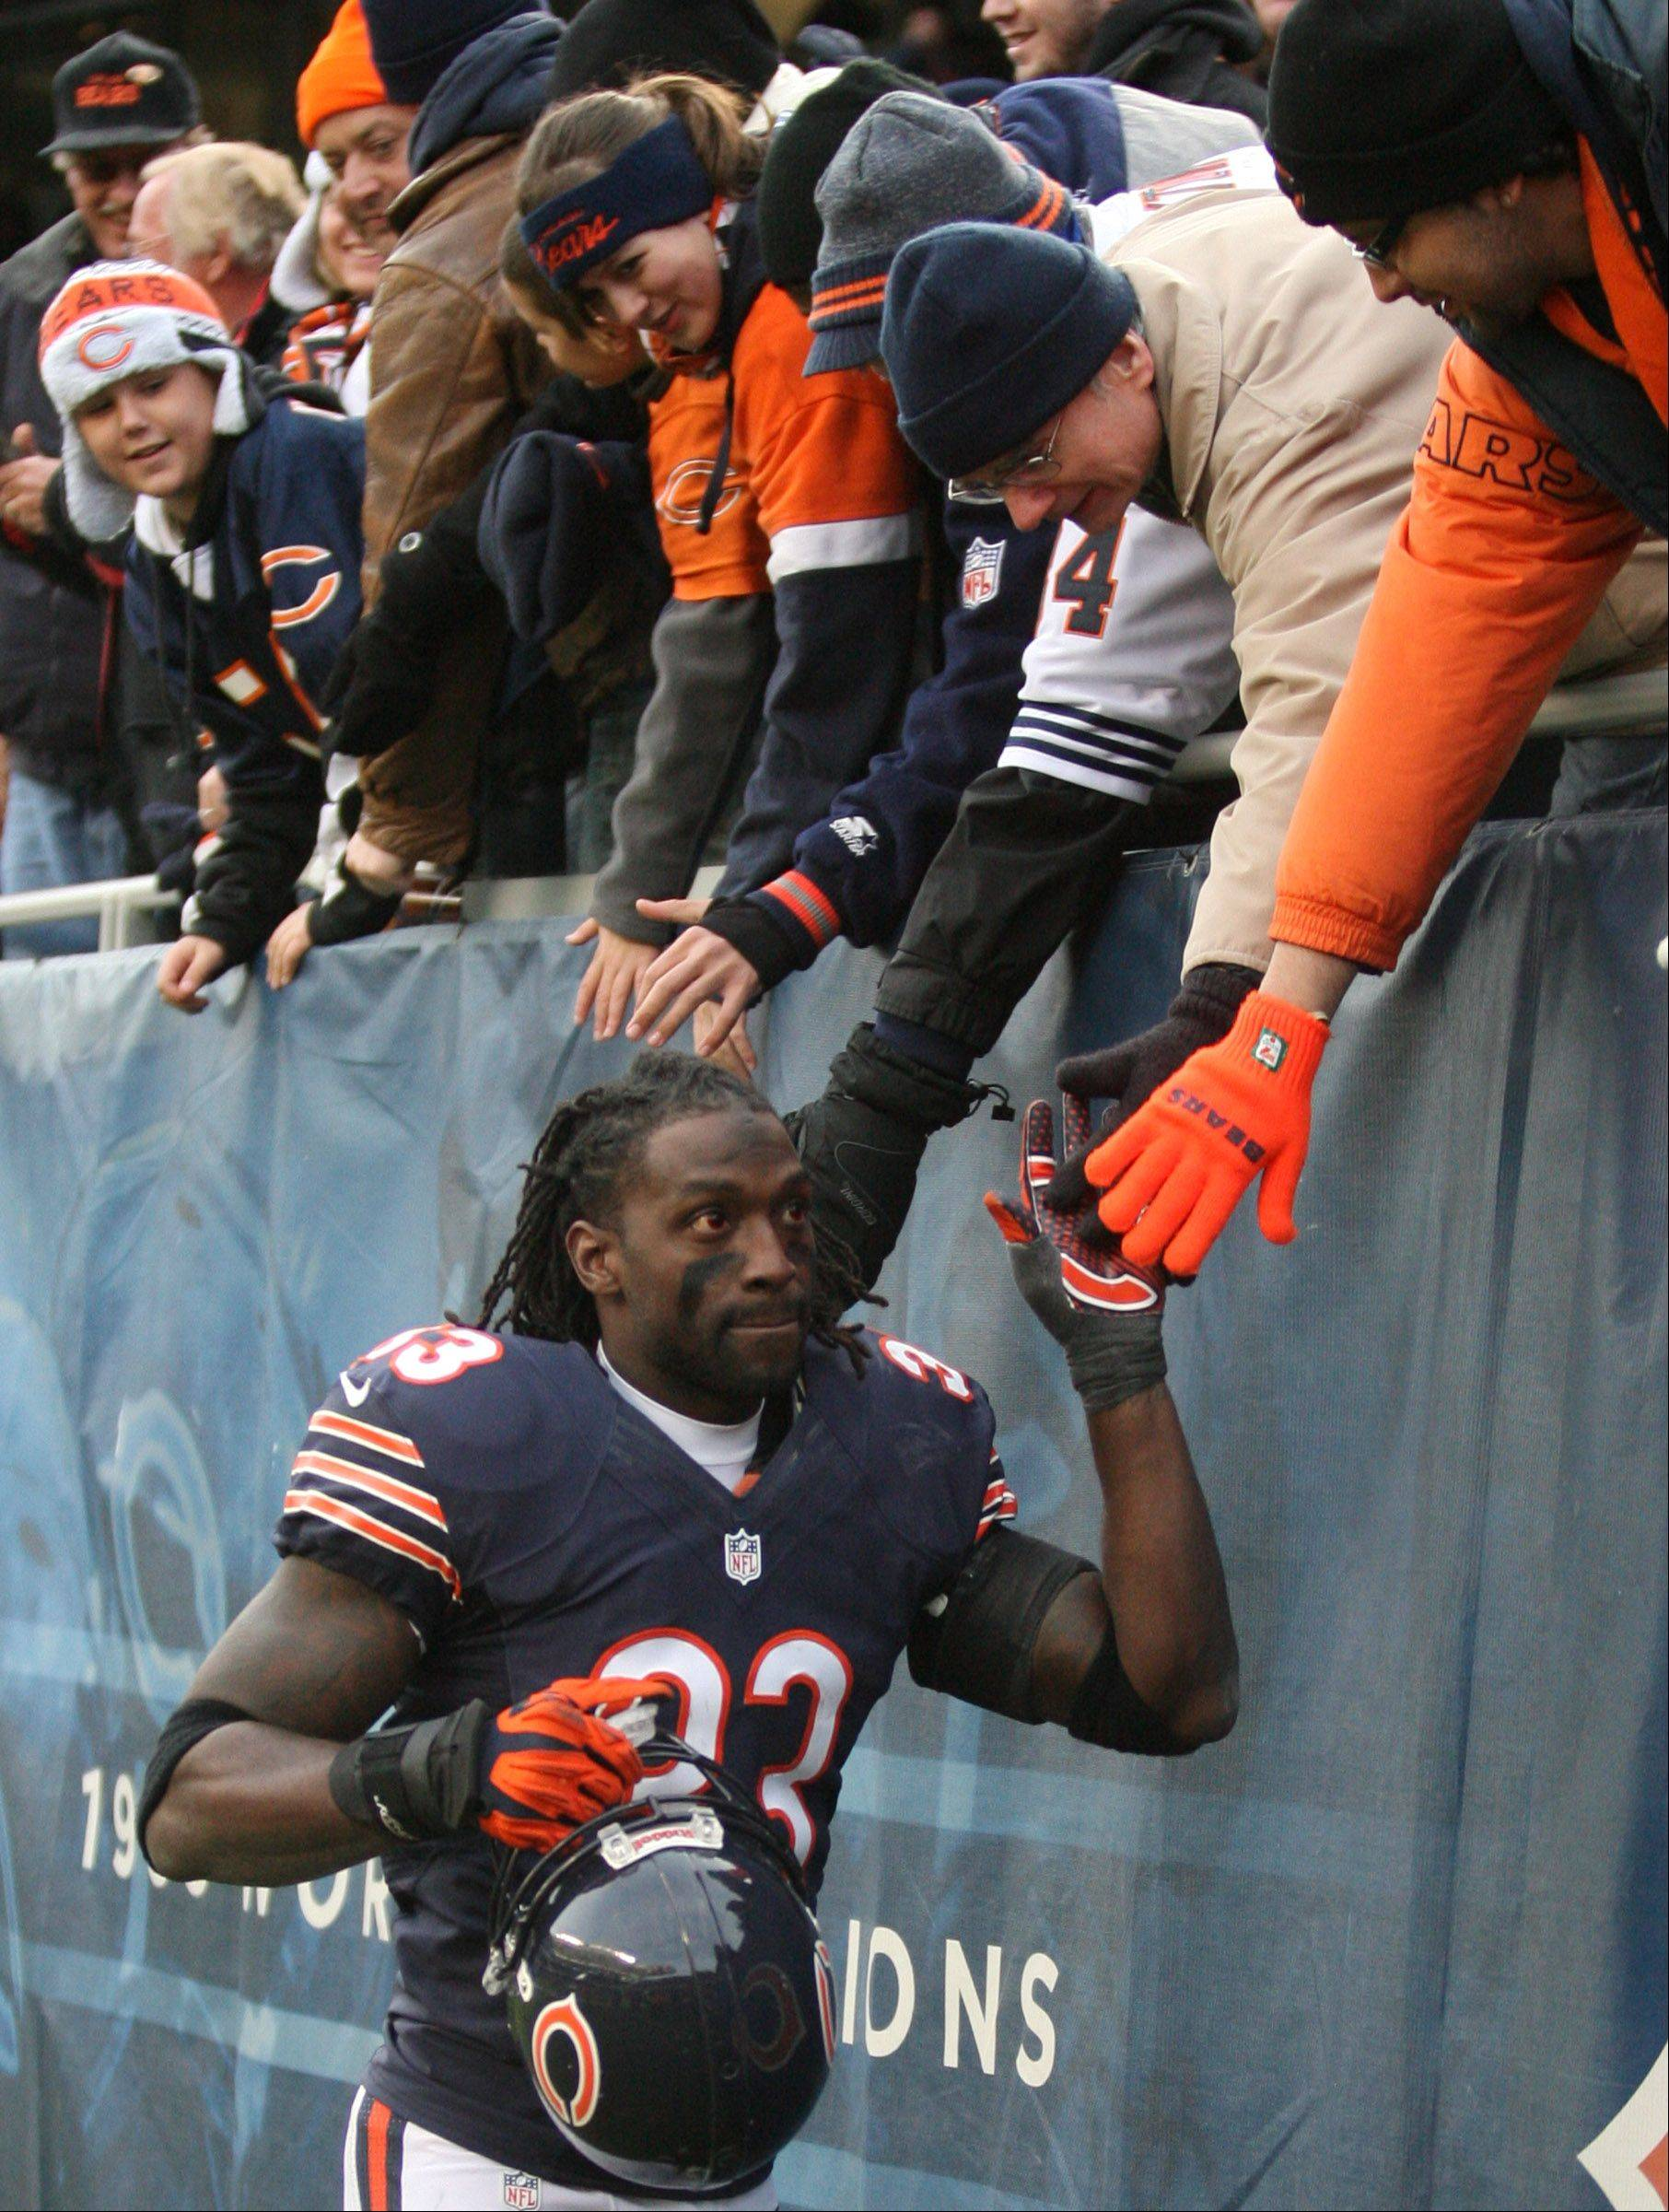 Chicago Bears cornerback Charles Tillman celebrates with fans after winning over the Minnesota Vikings at Soldier Field Sunday.